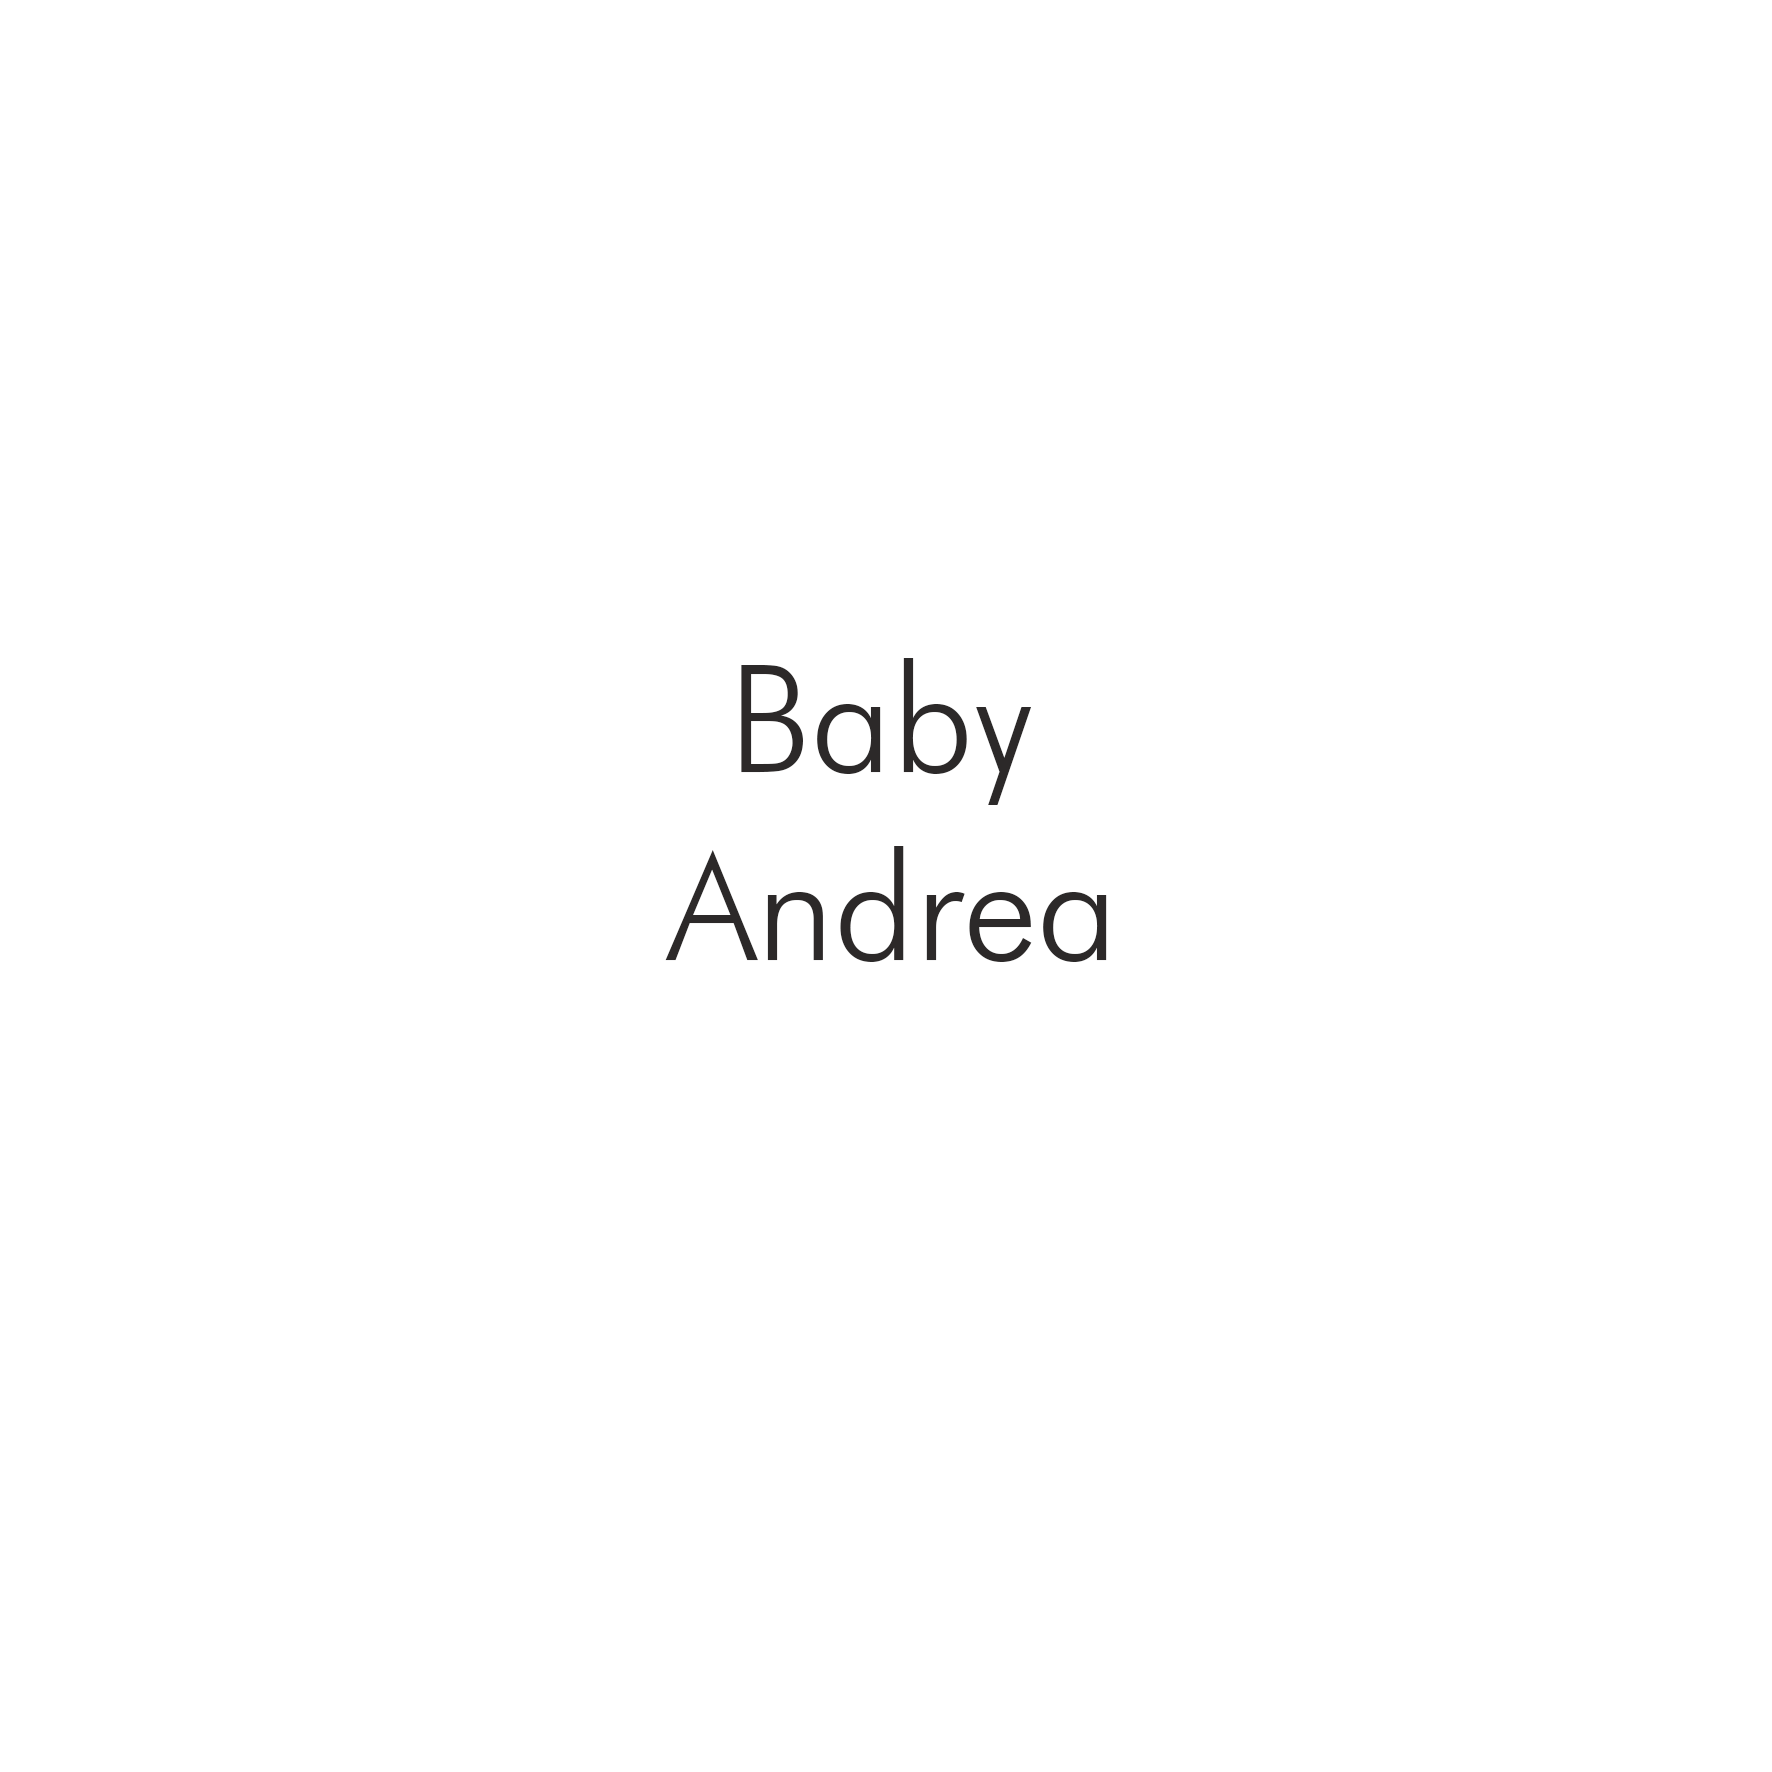 Baby Andrea.png